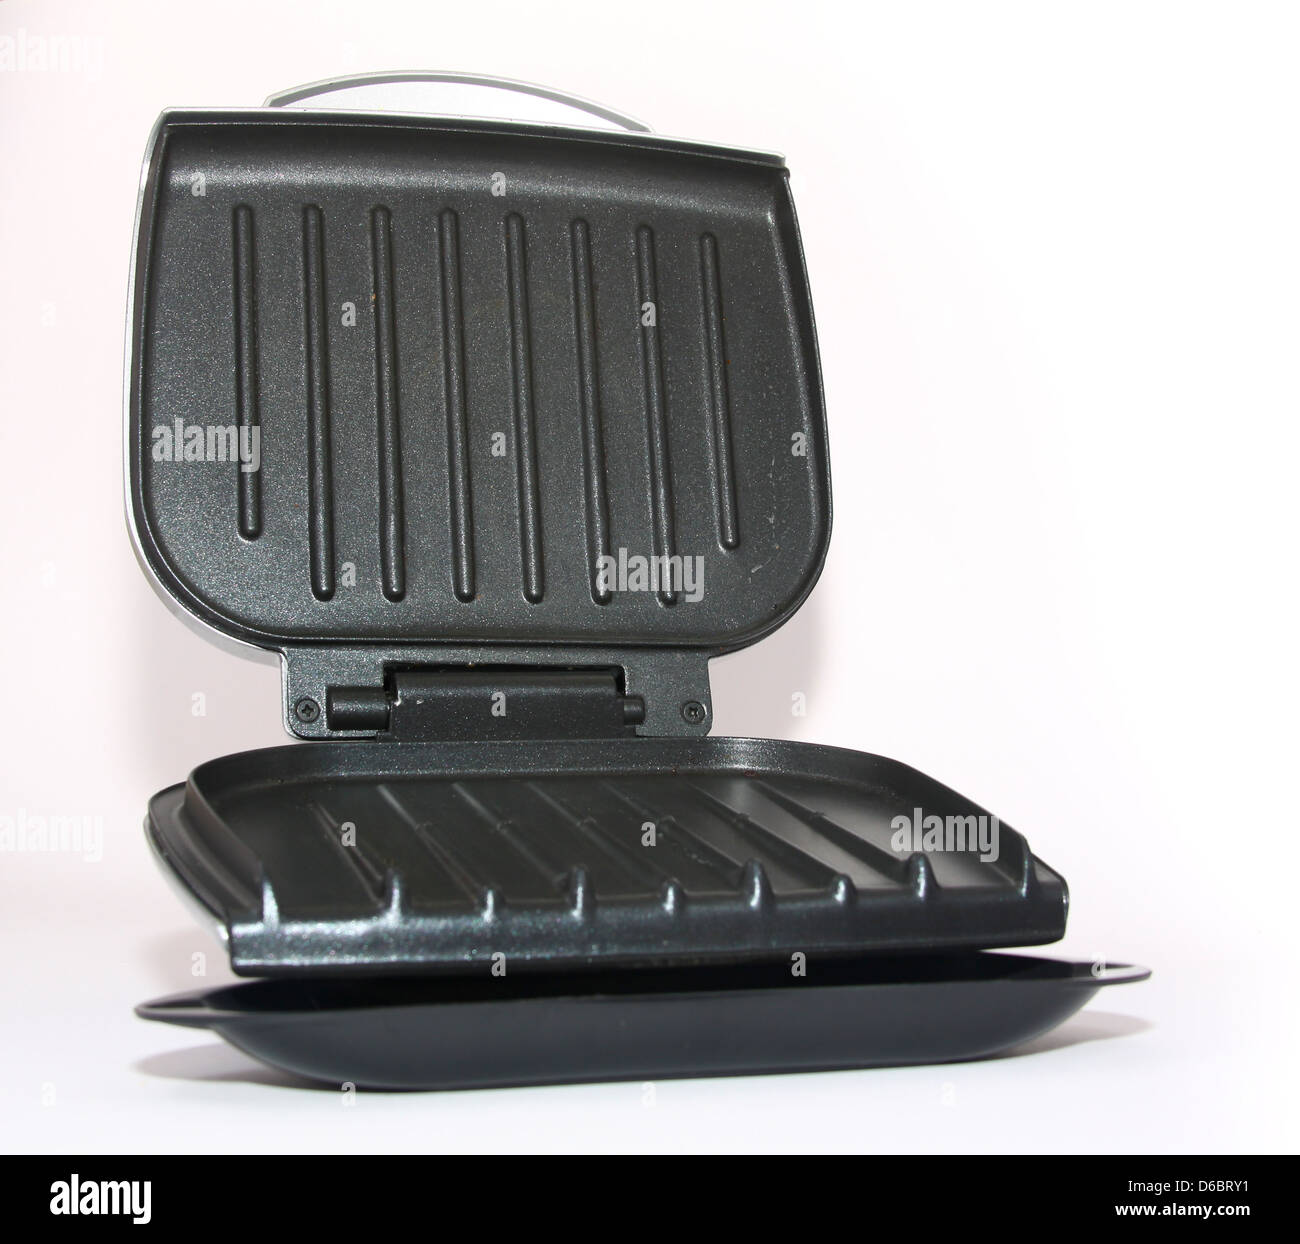 George Foreman electric mini grill - Stock Image